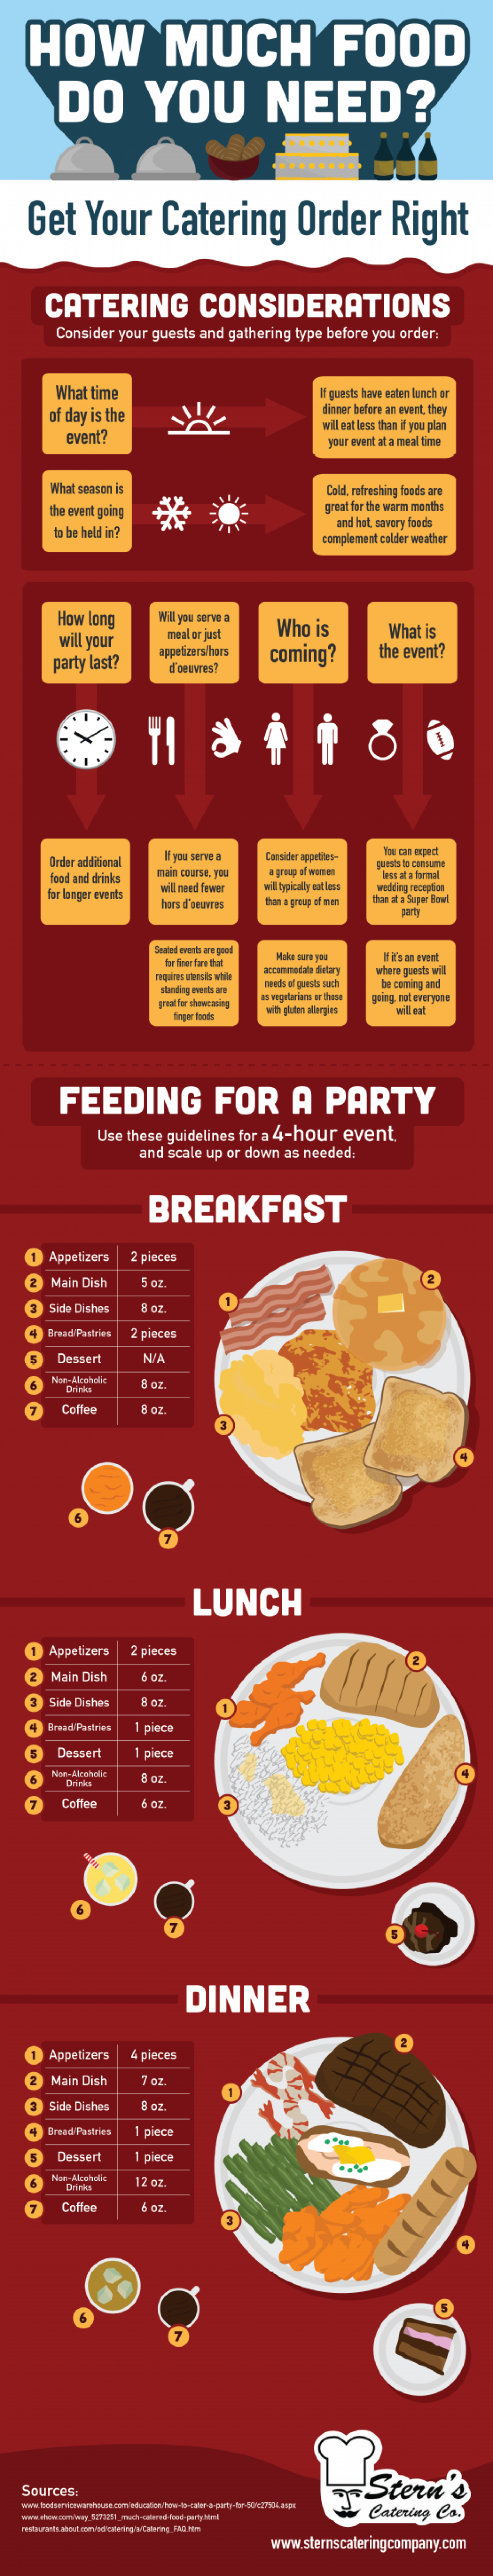 How Much Food Do You Need? Get Your Catering Order Right  Infographic